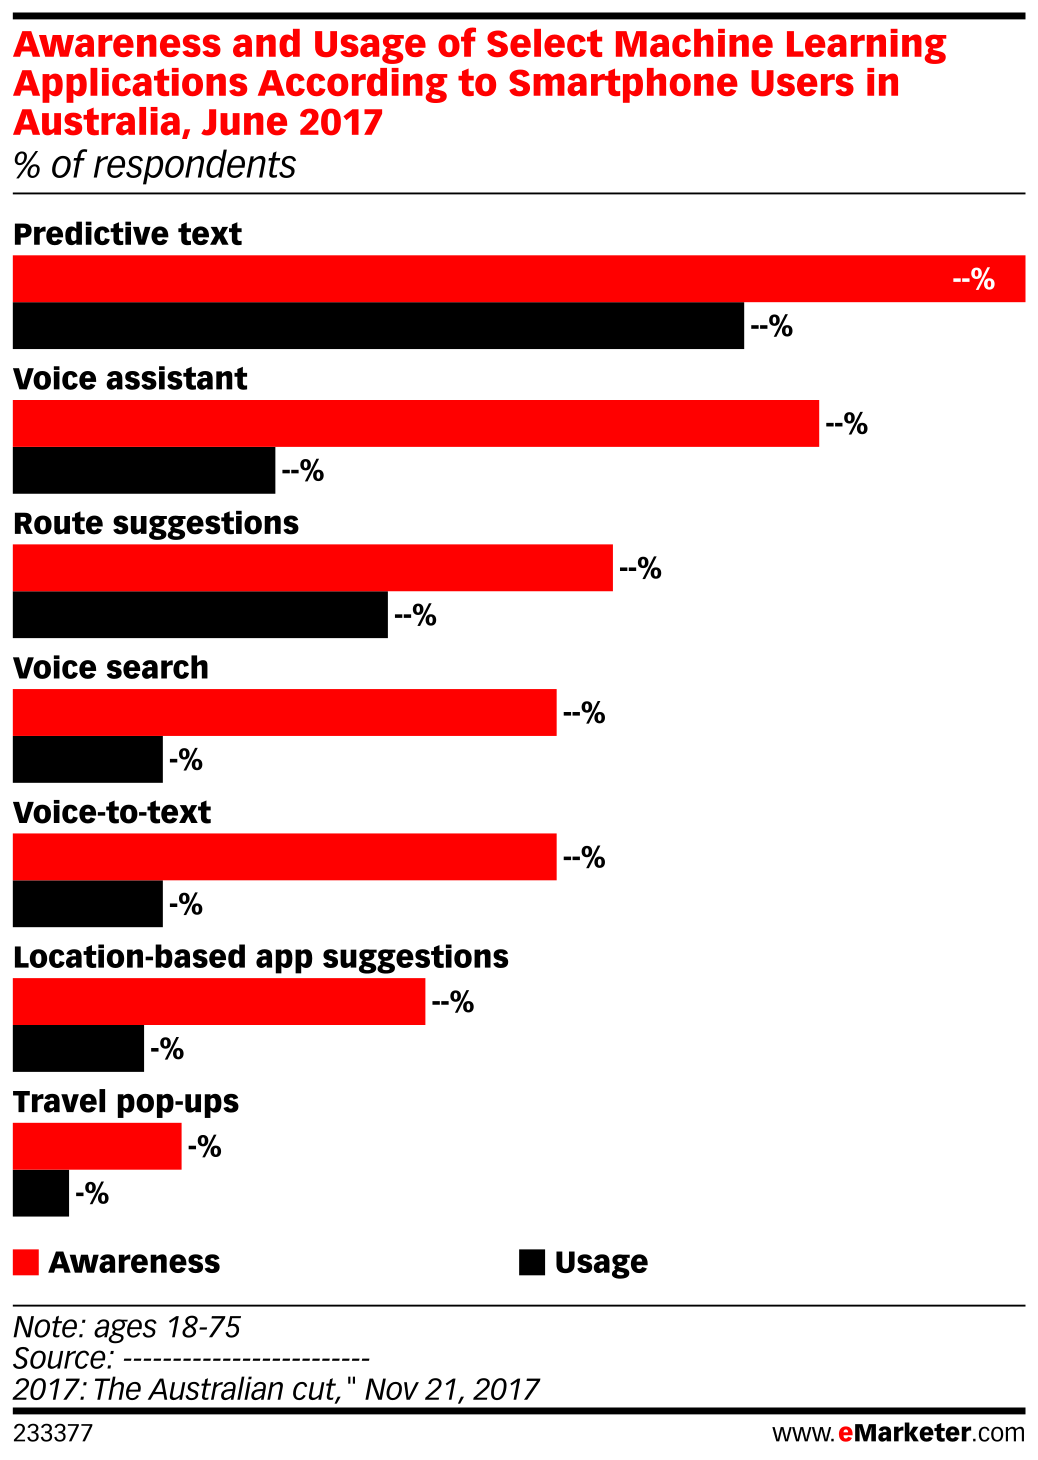 Awareness and Usage of Select Machine Learning Applications According to Smartphone Users in Australia, June 2017 (% of respondents)